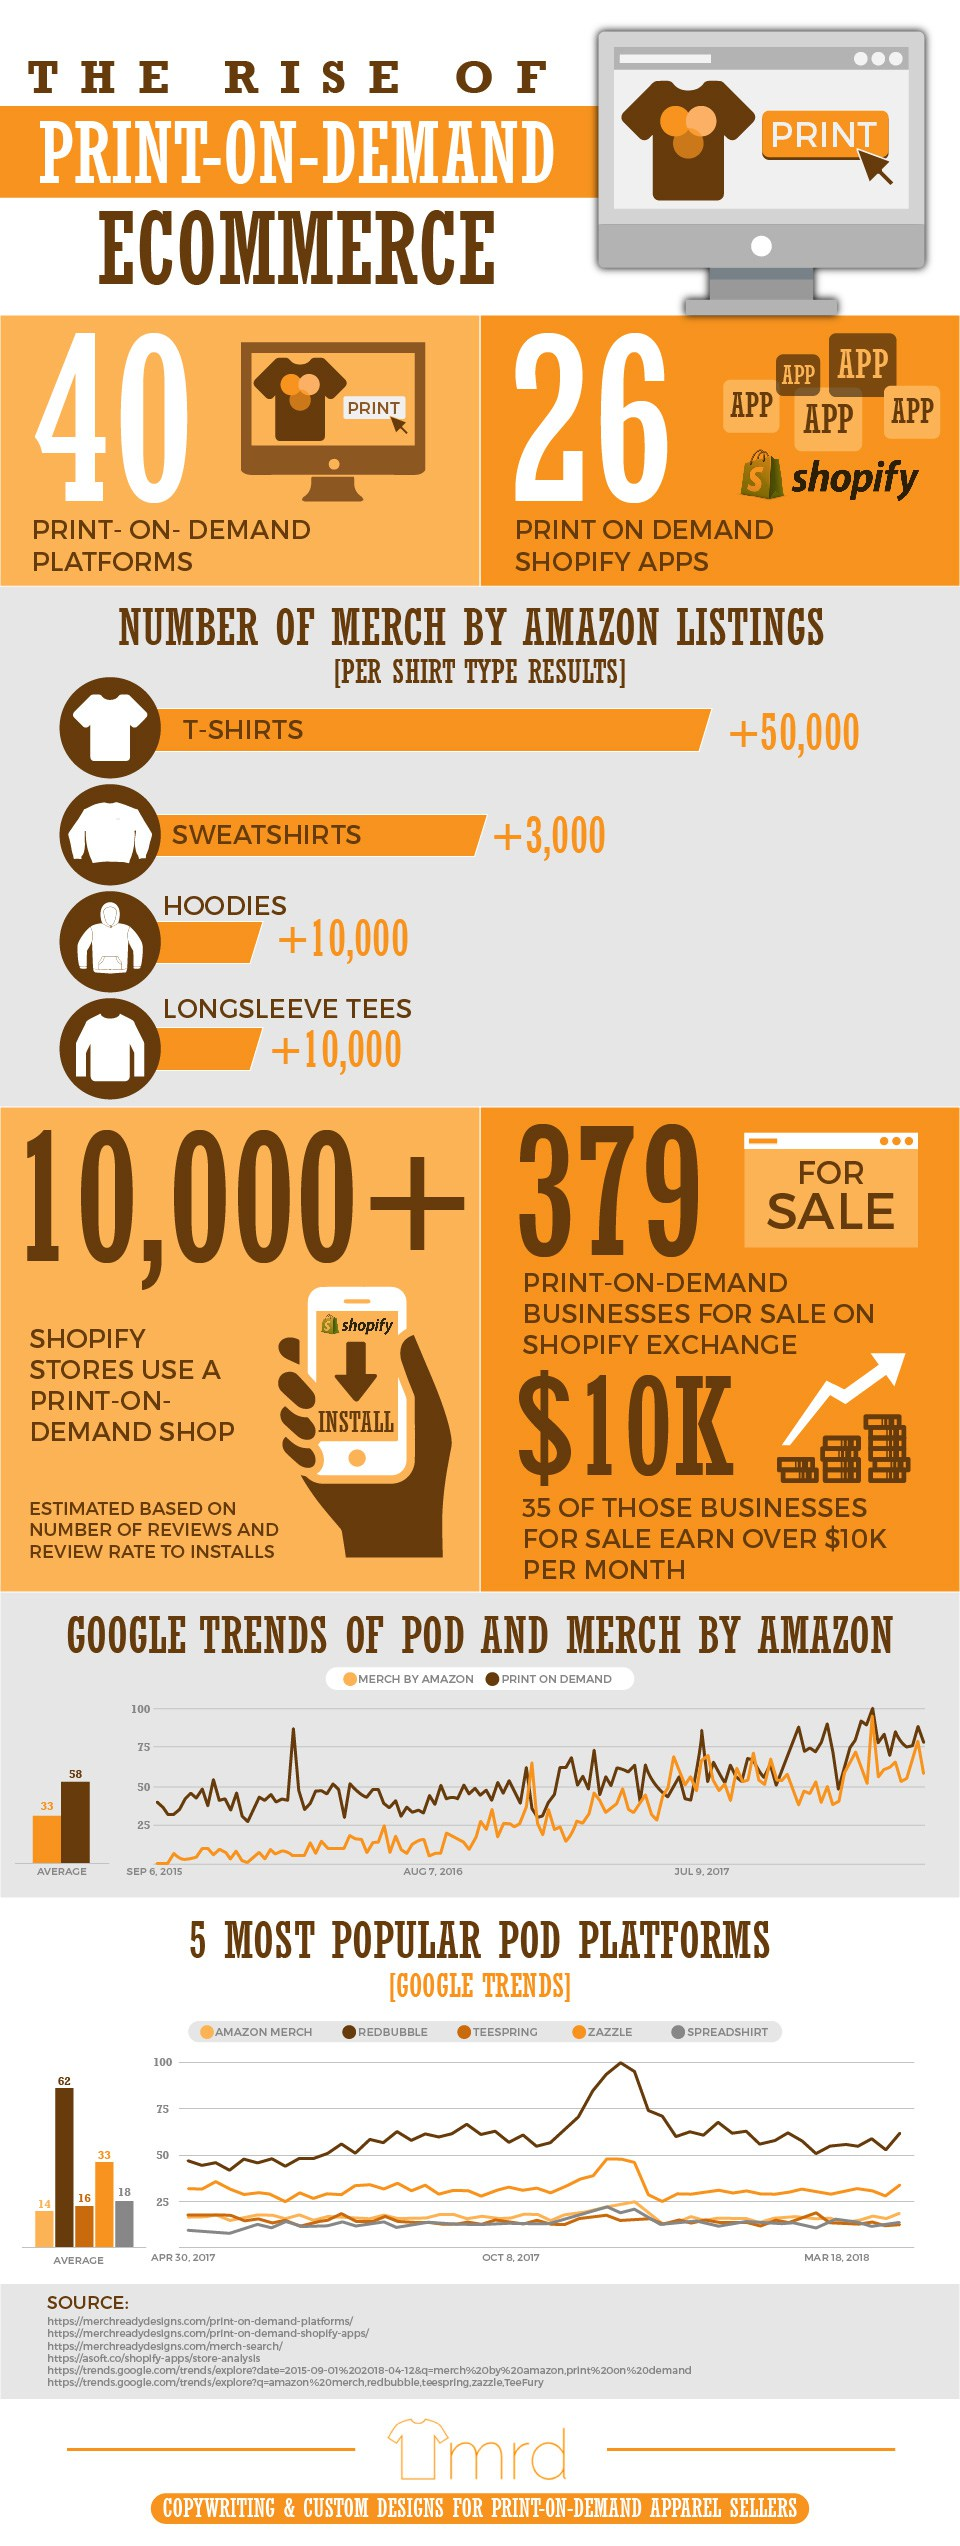 Rise-of-POD-Ecommerce-Print-on-Demand-Infographic